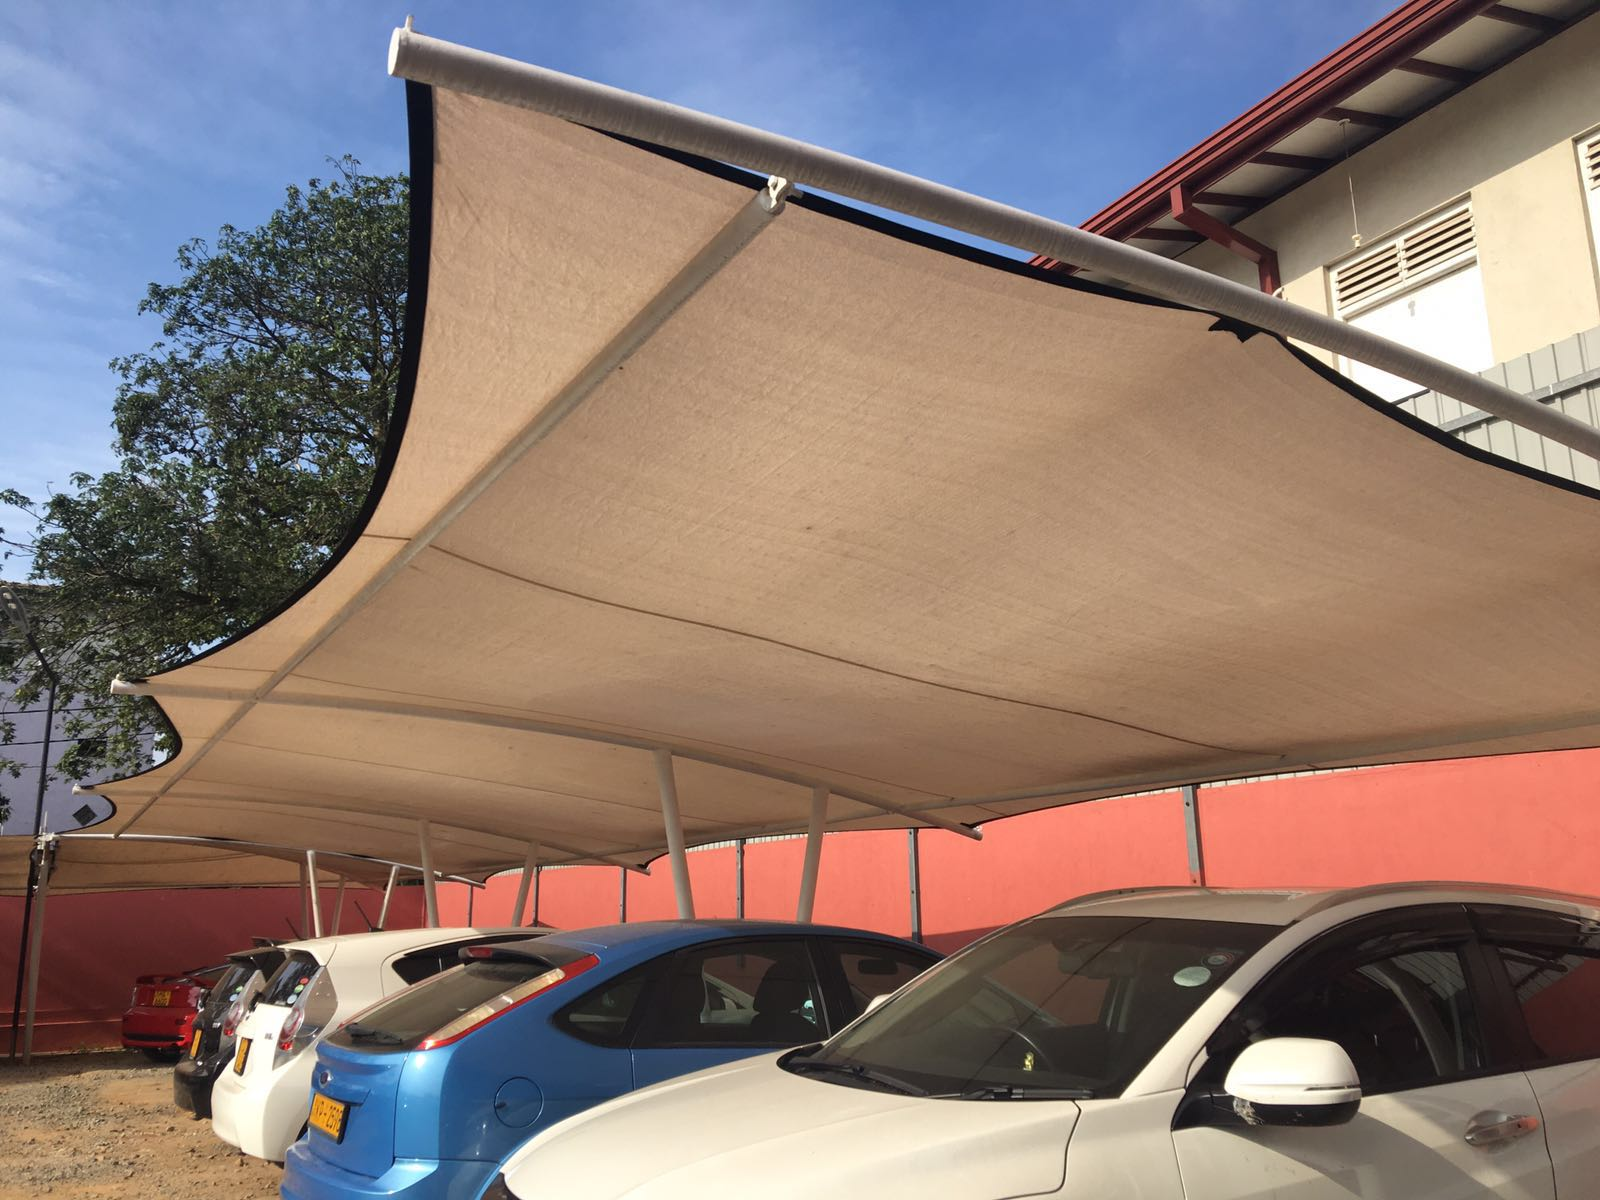 Car Park Shades Shade Solutions By Light Shade Sri Lanka